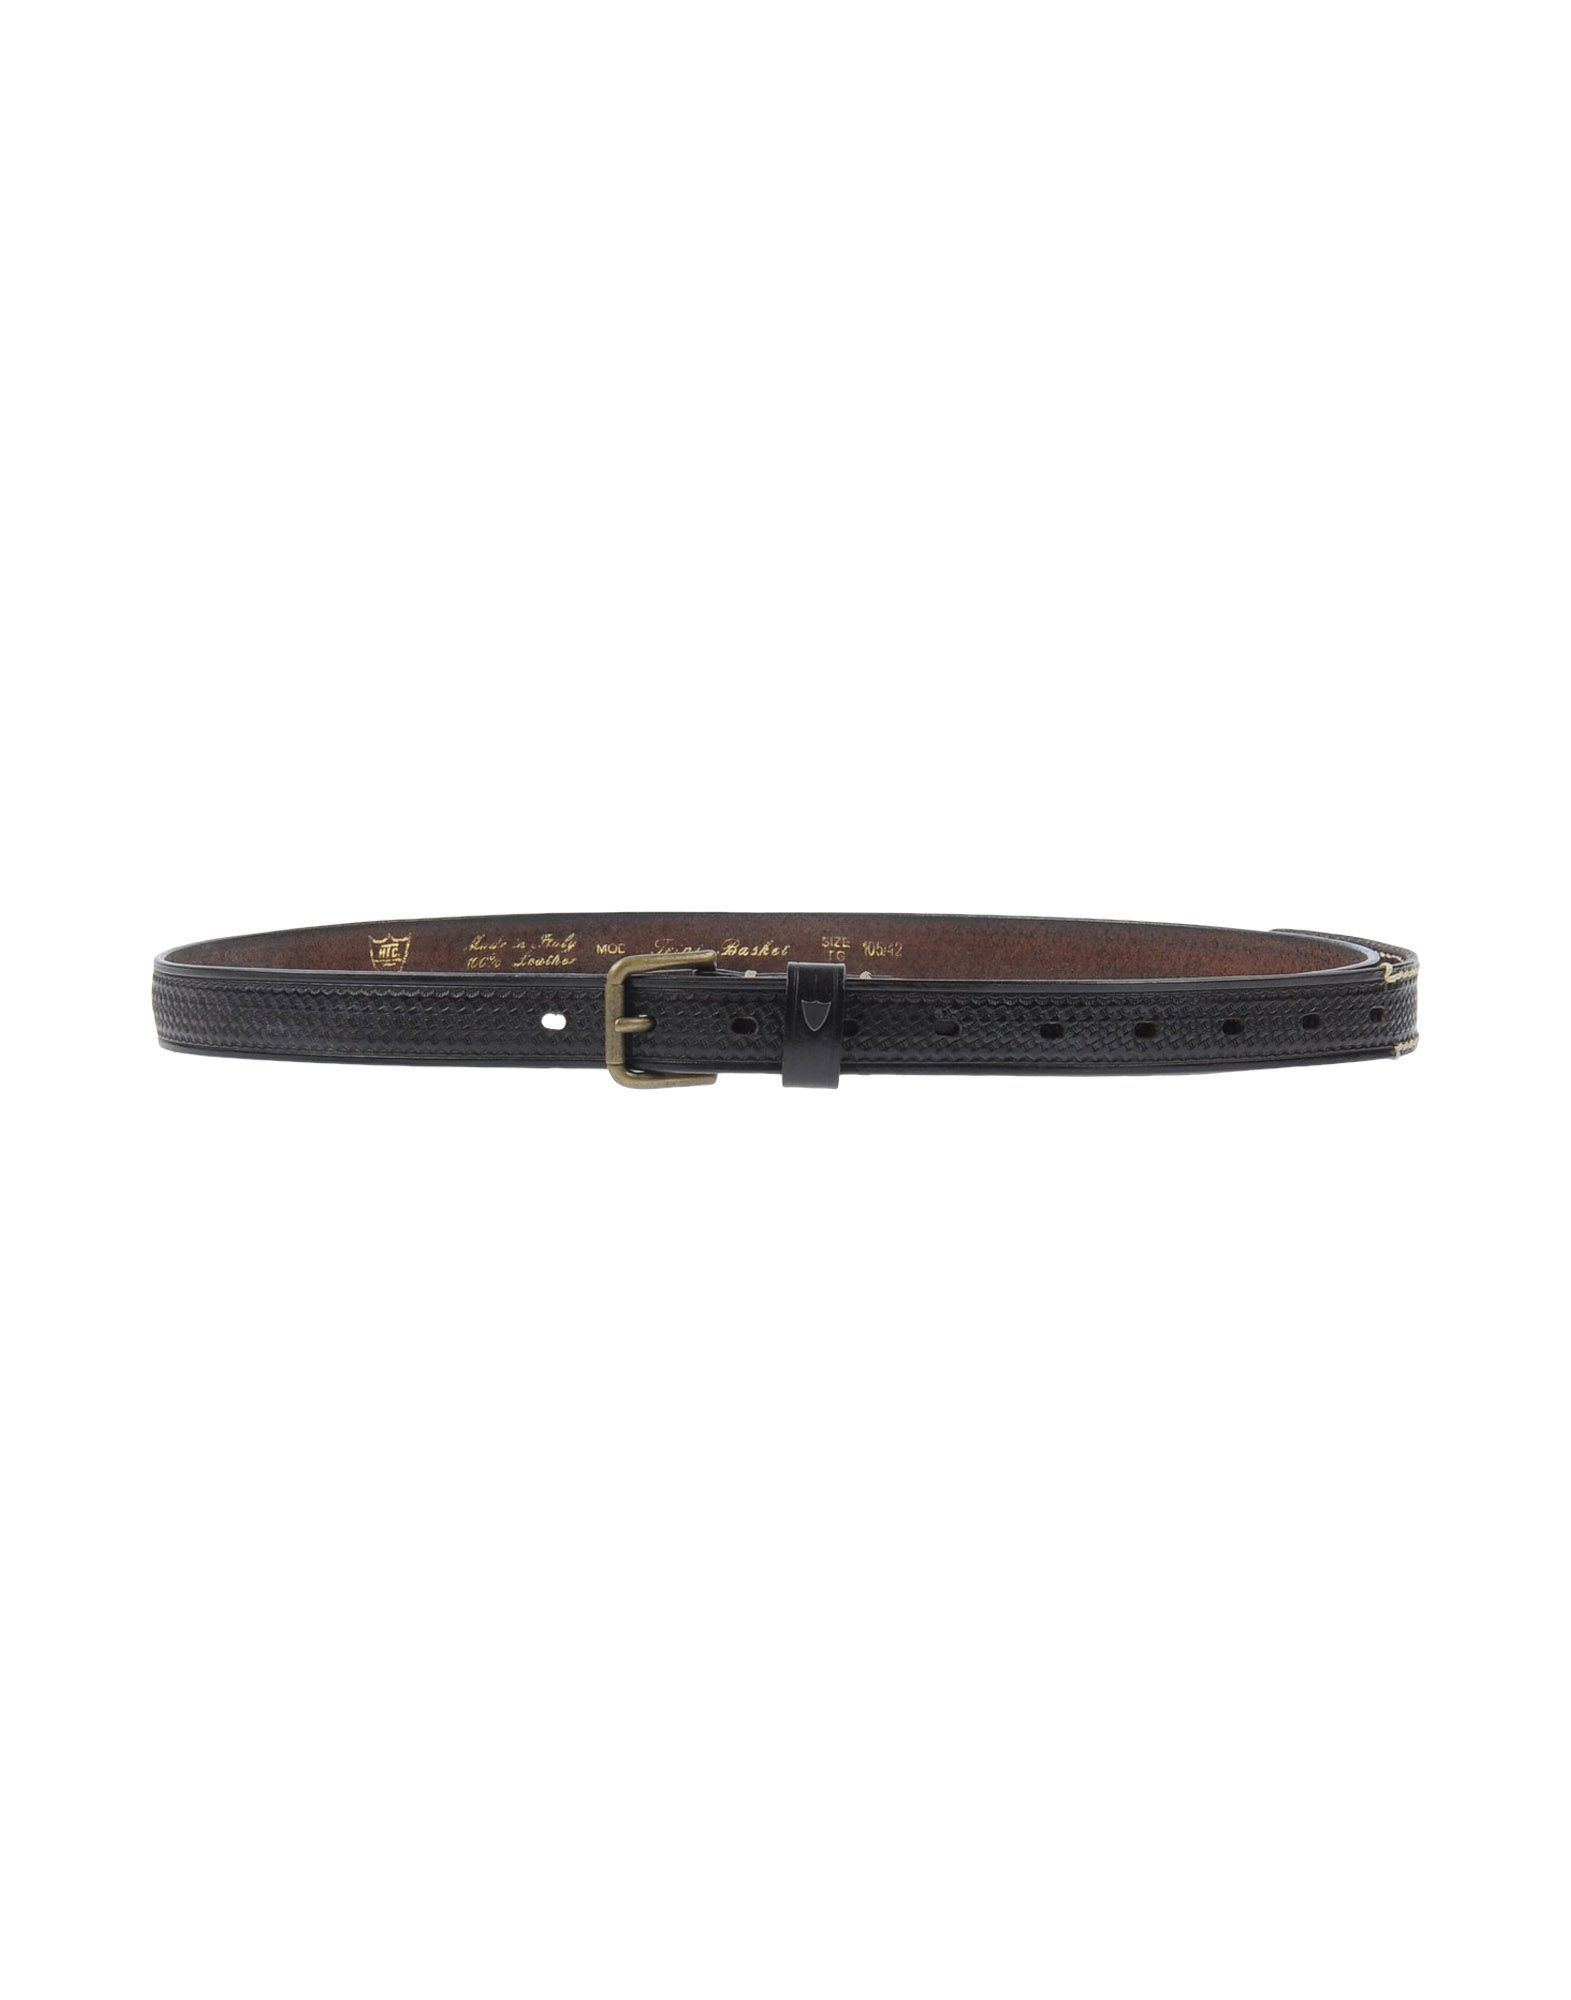 Small Leather Goods - Belts HTC 8hrdtu